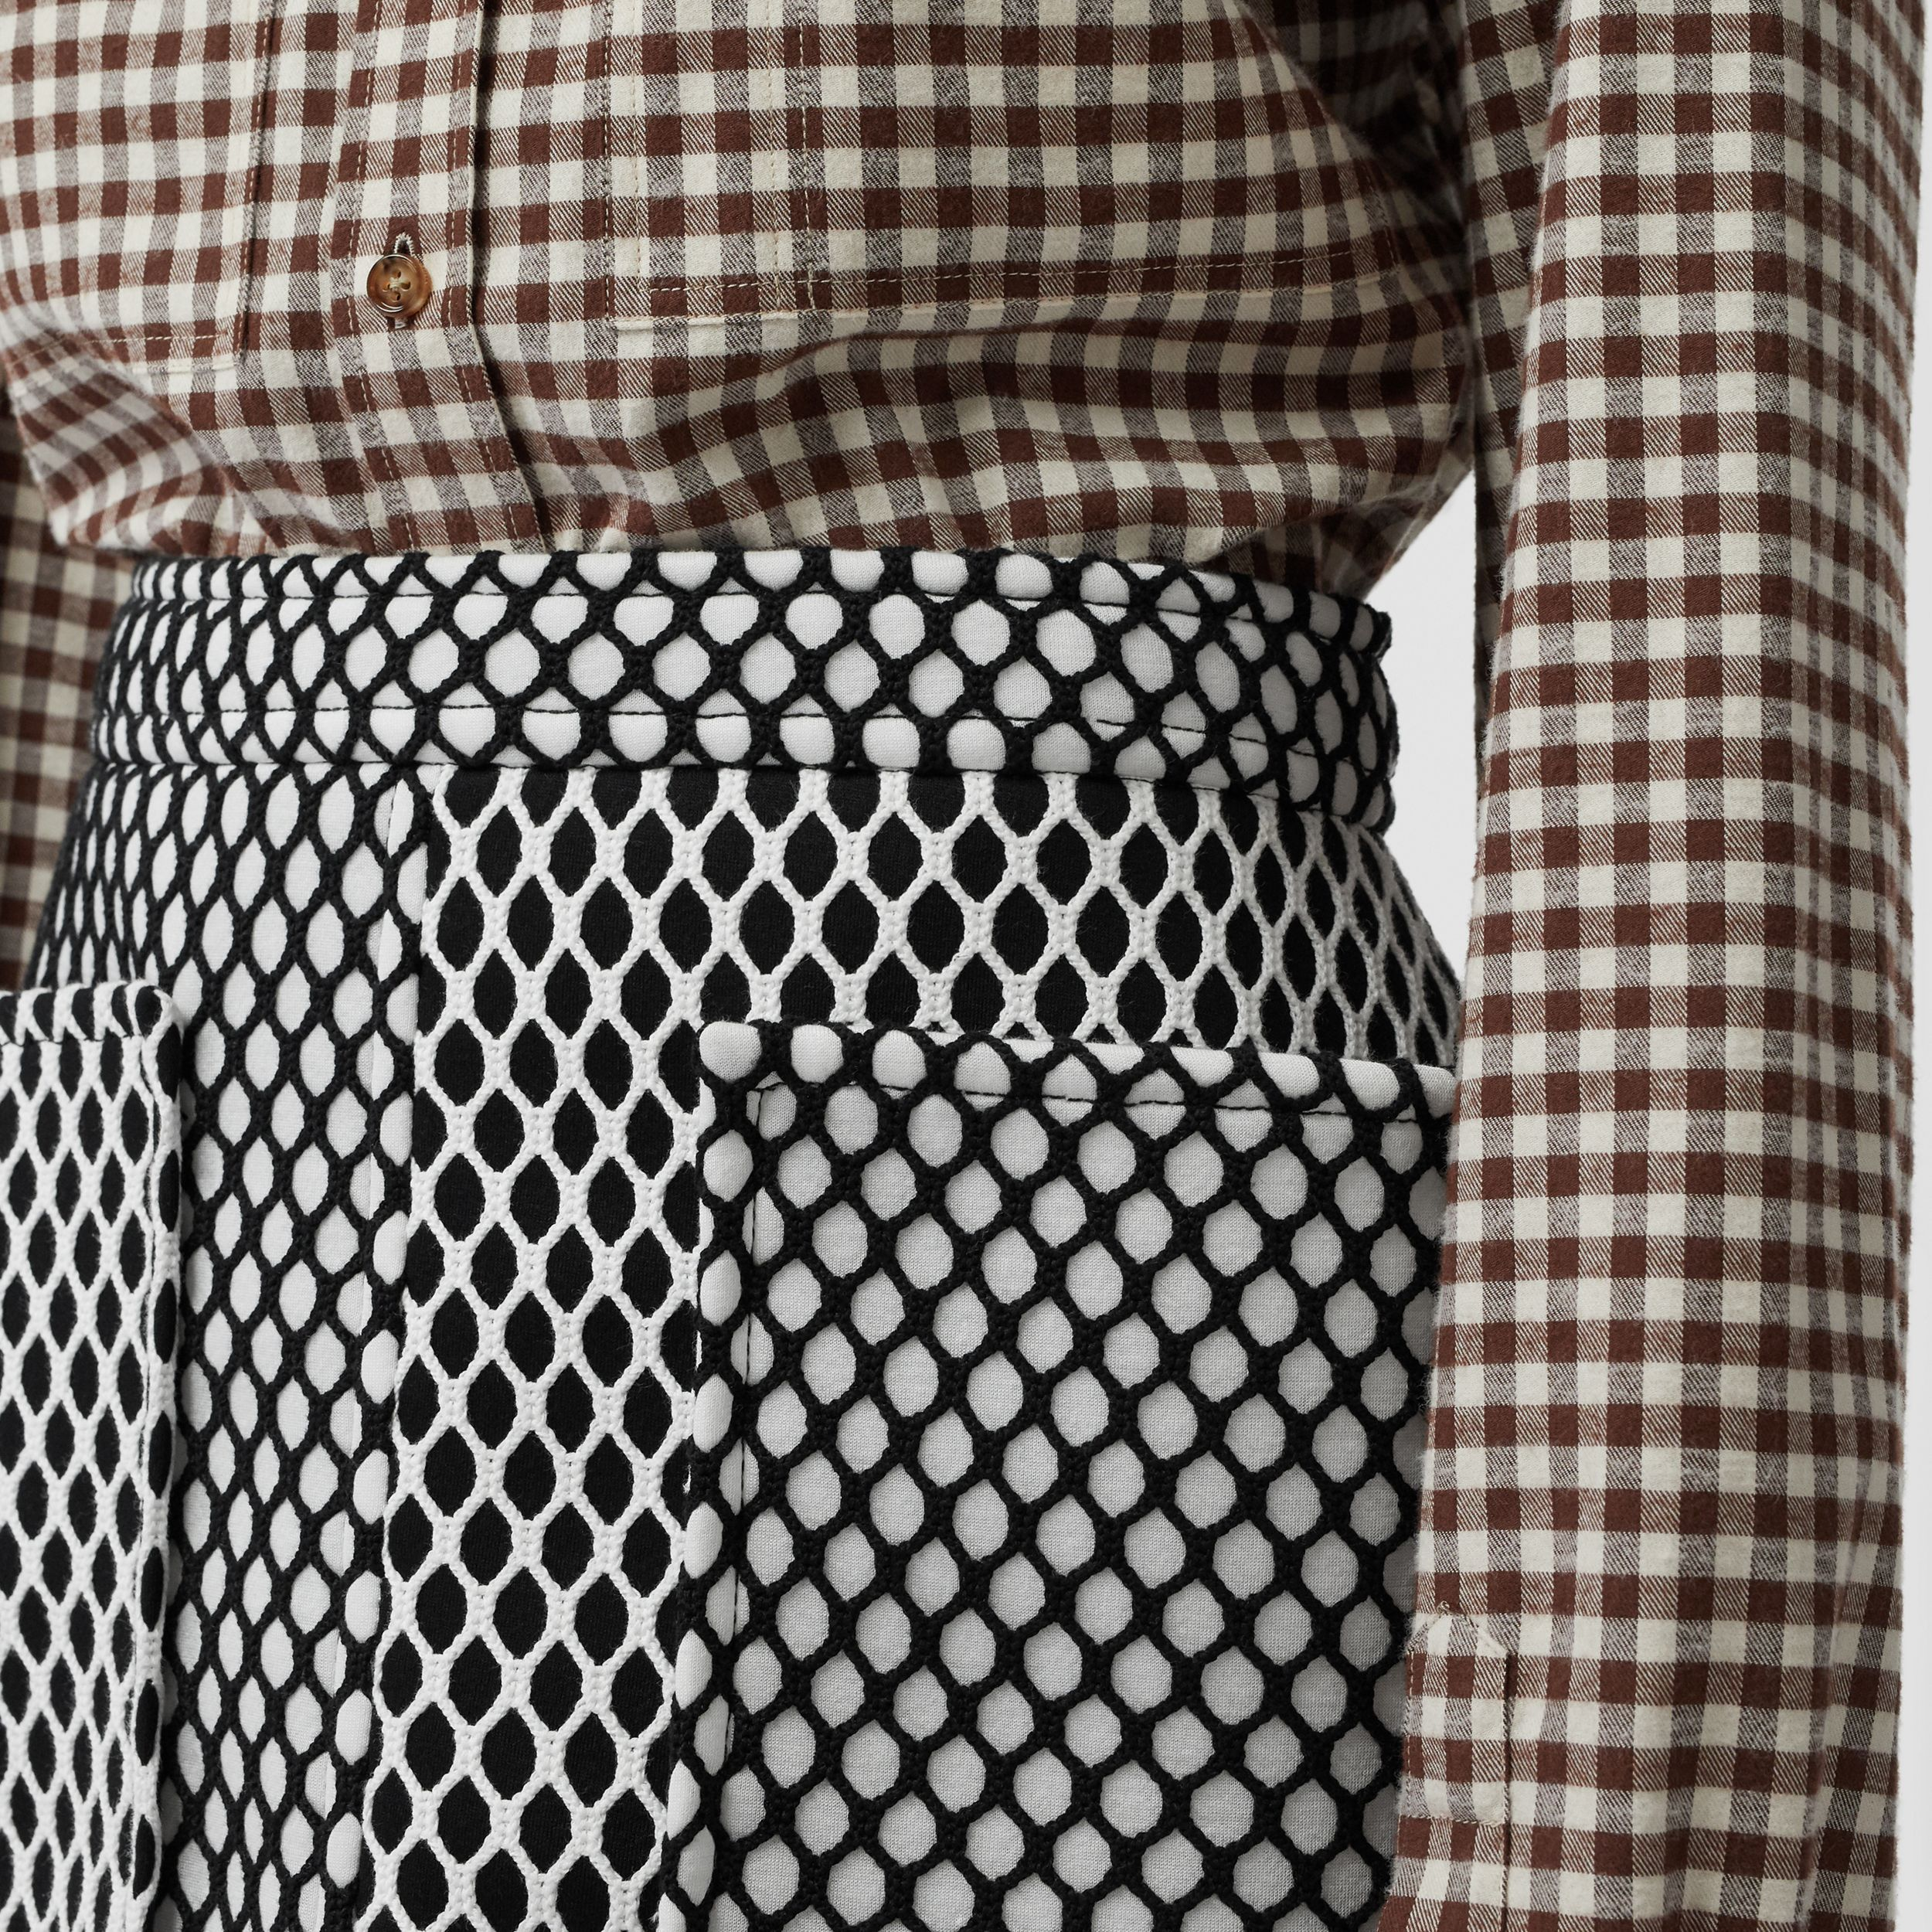 Pocket Detail Mesh and Neoprene Mini Skirt in Black - Women | Burberry - 2